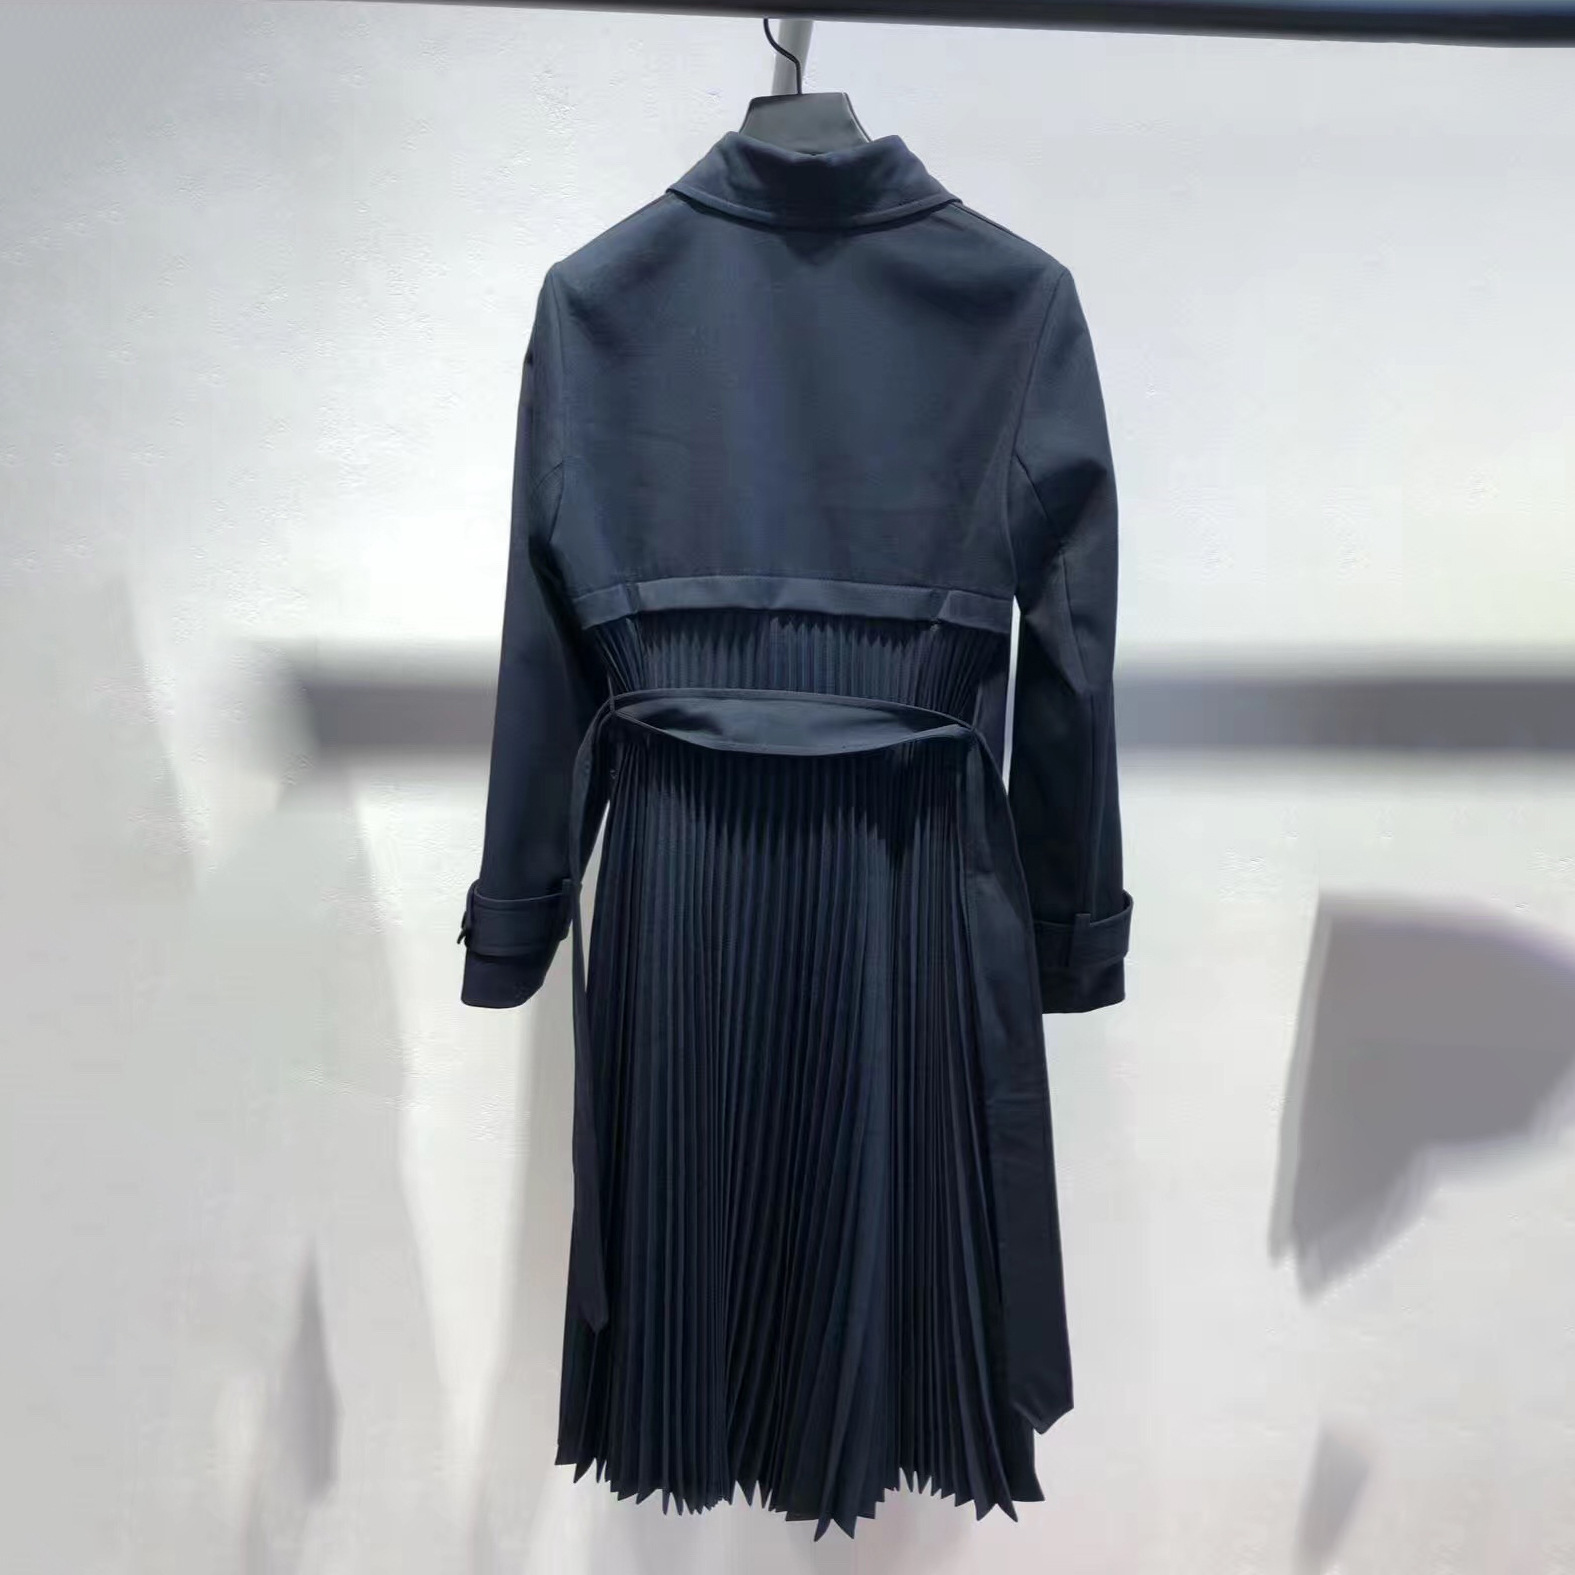 Image 3 - Women Trench 2019 Autumn and Winter New Temperament Pleated Stitching Tie Bow Windbreaker JacketTrench